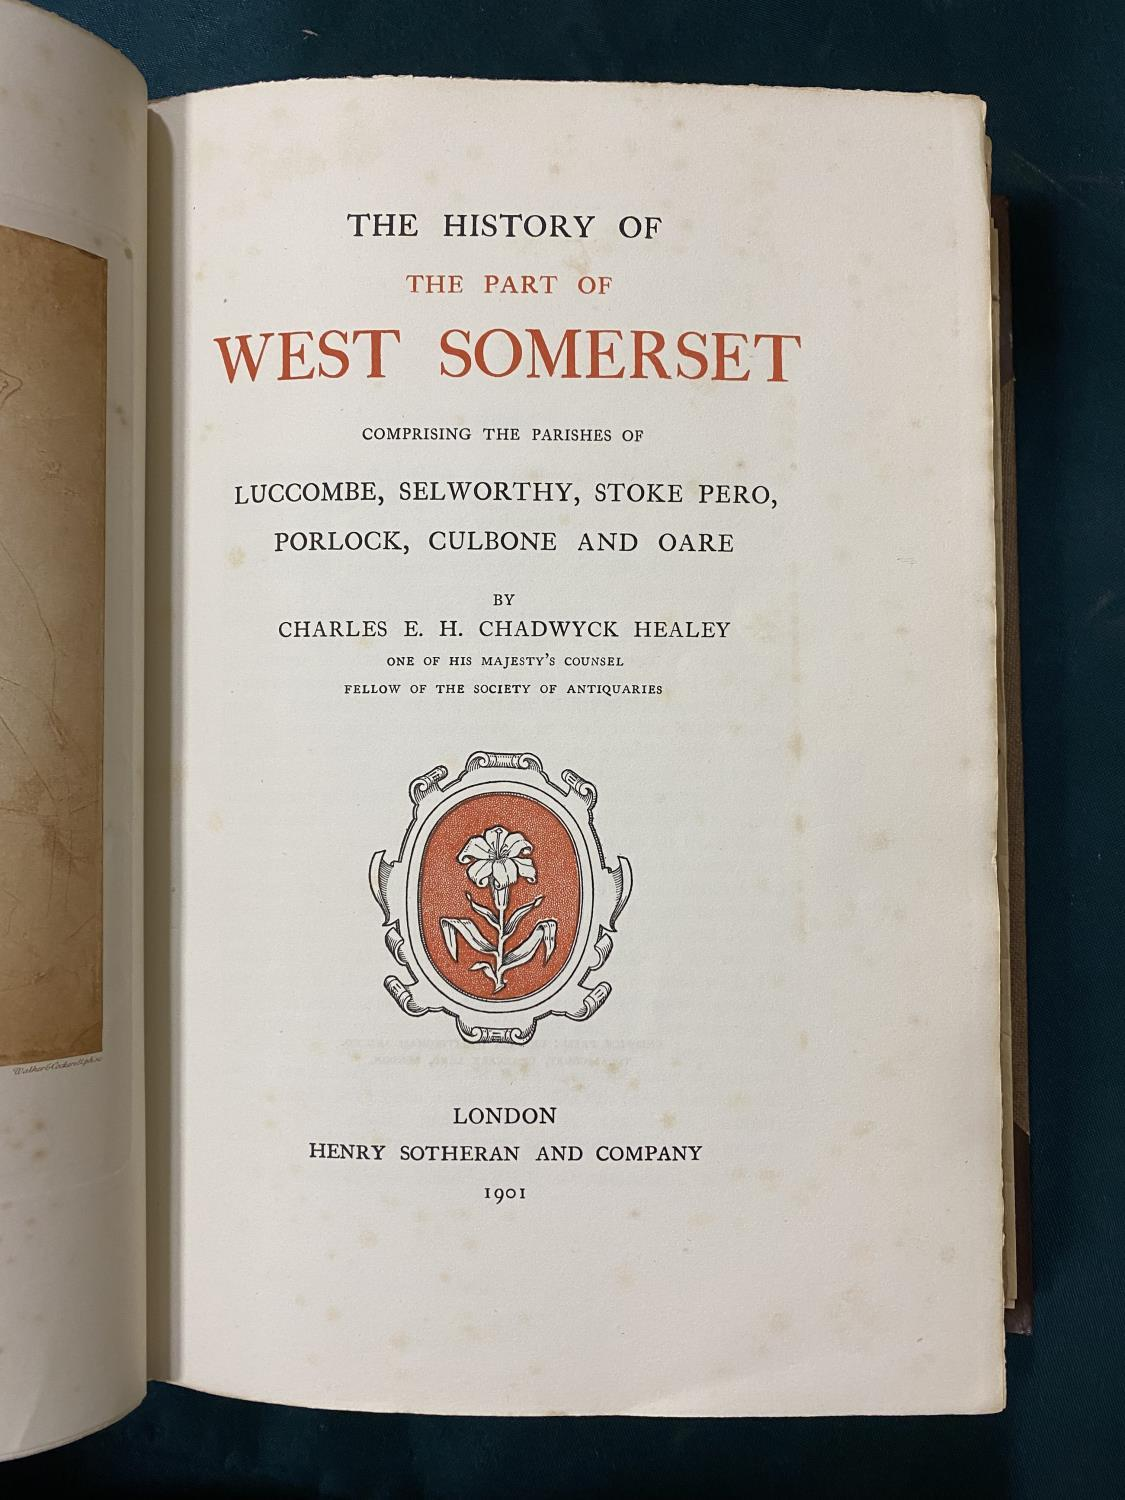 Healey, Charles E. H. Chadwick. The History of the Part of West Somerset, one of 380 copies, plates, - Image 6 of 8